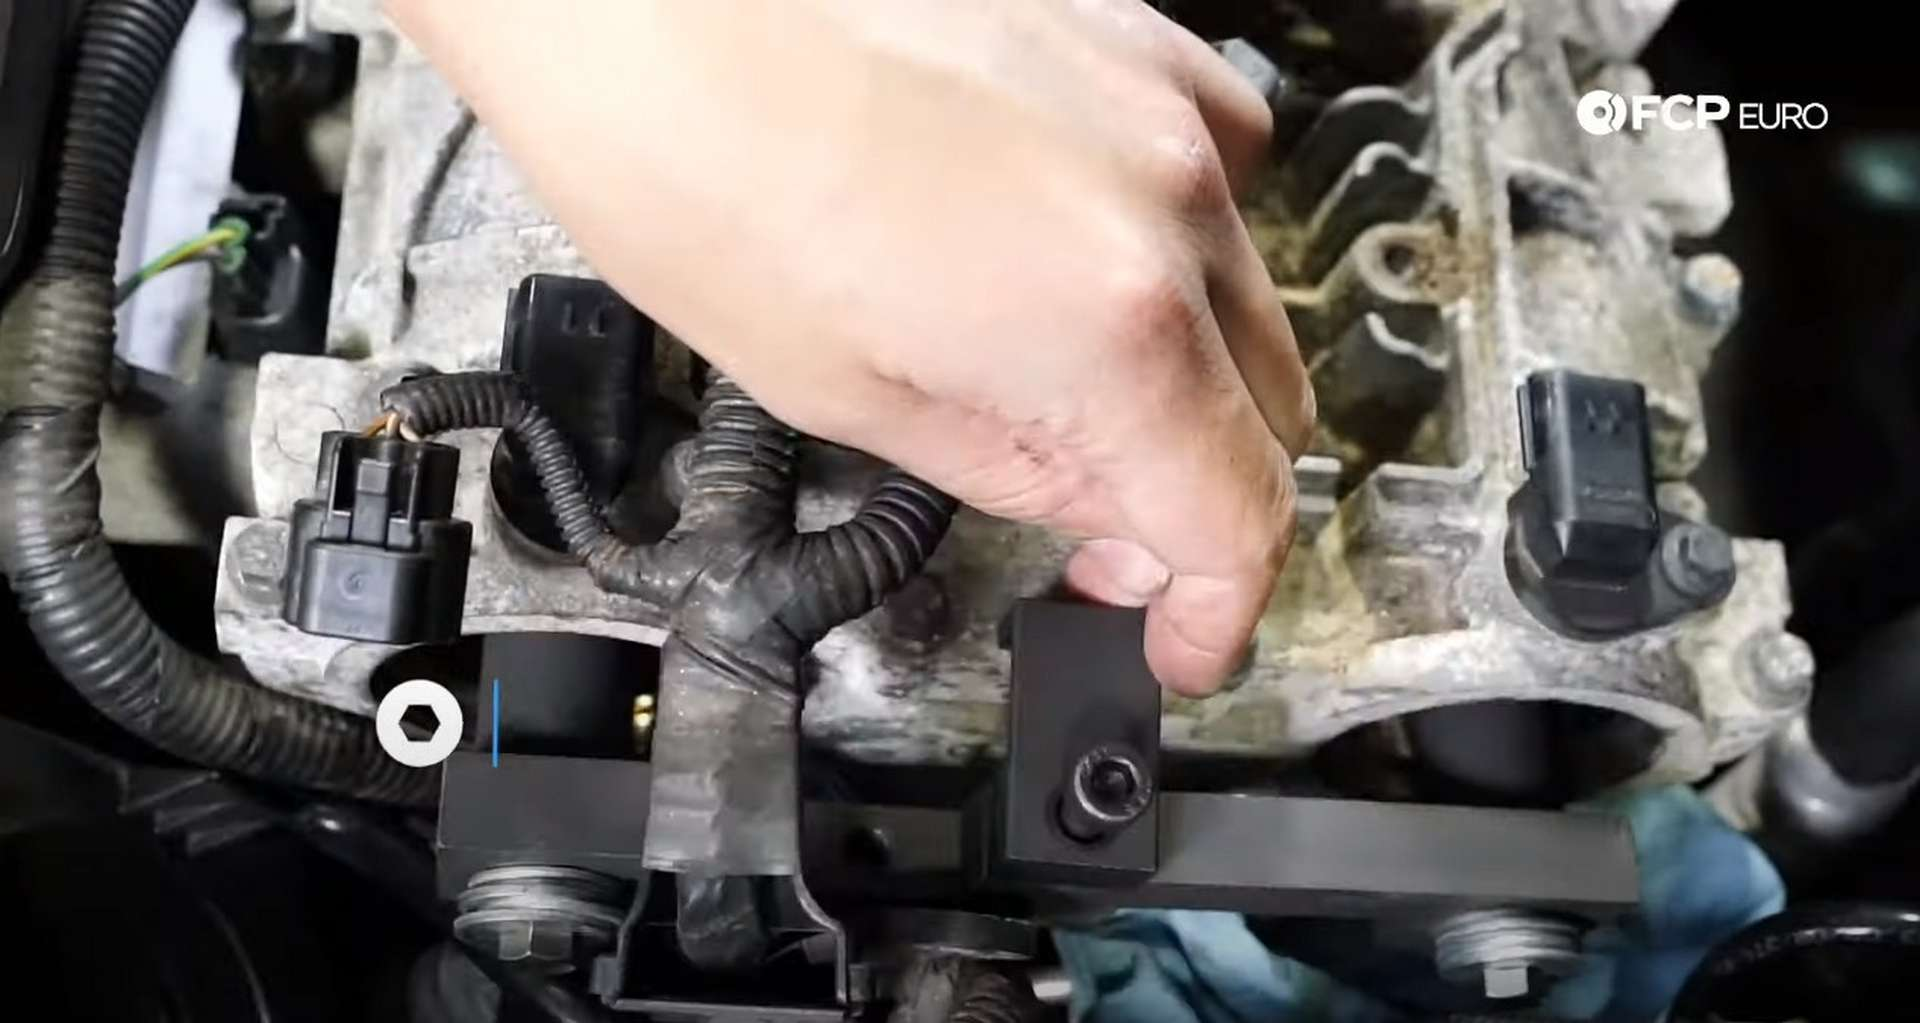 DIY Volvo P1 Water Pump Replacement installing the lock for the cam locks